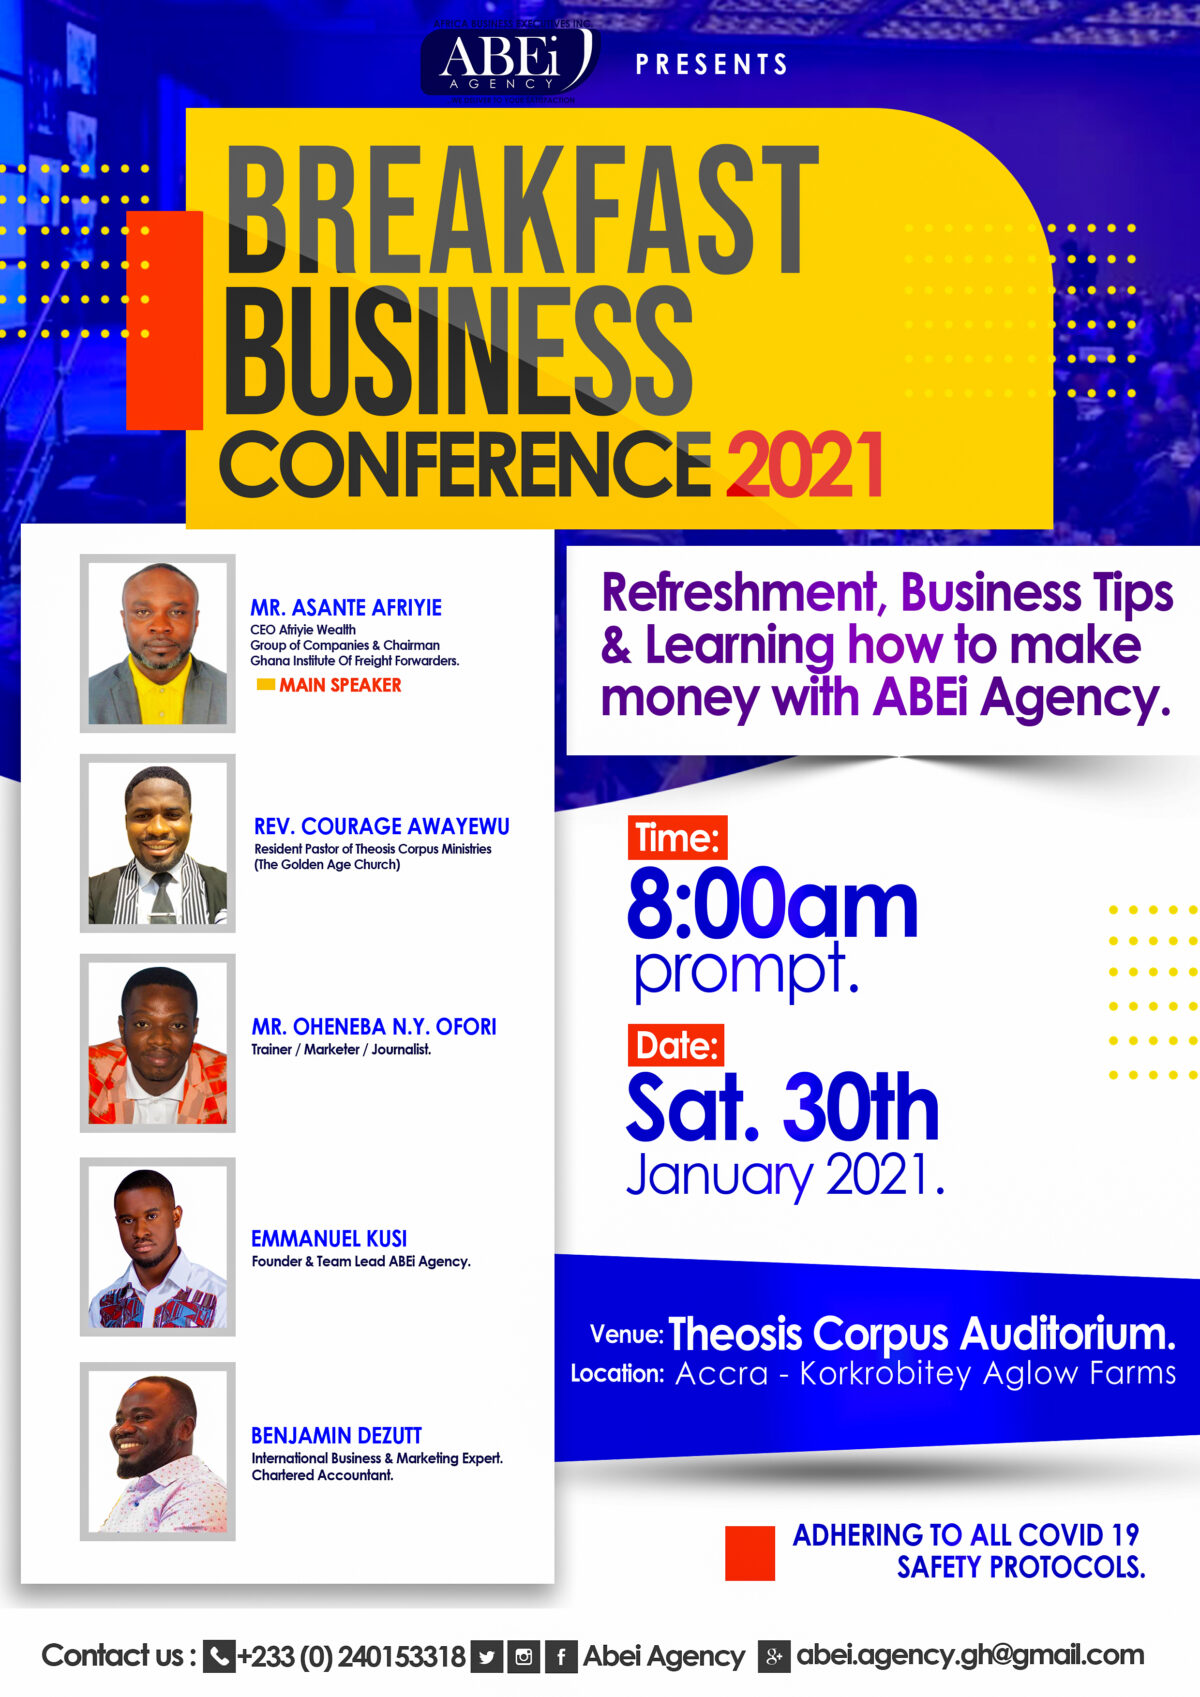 Breakfast Business Conference